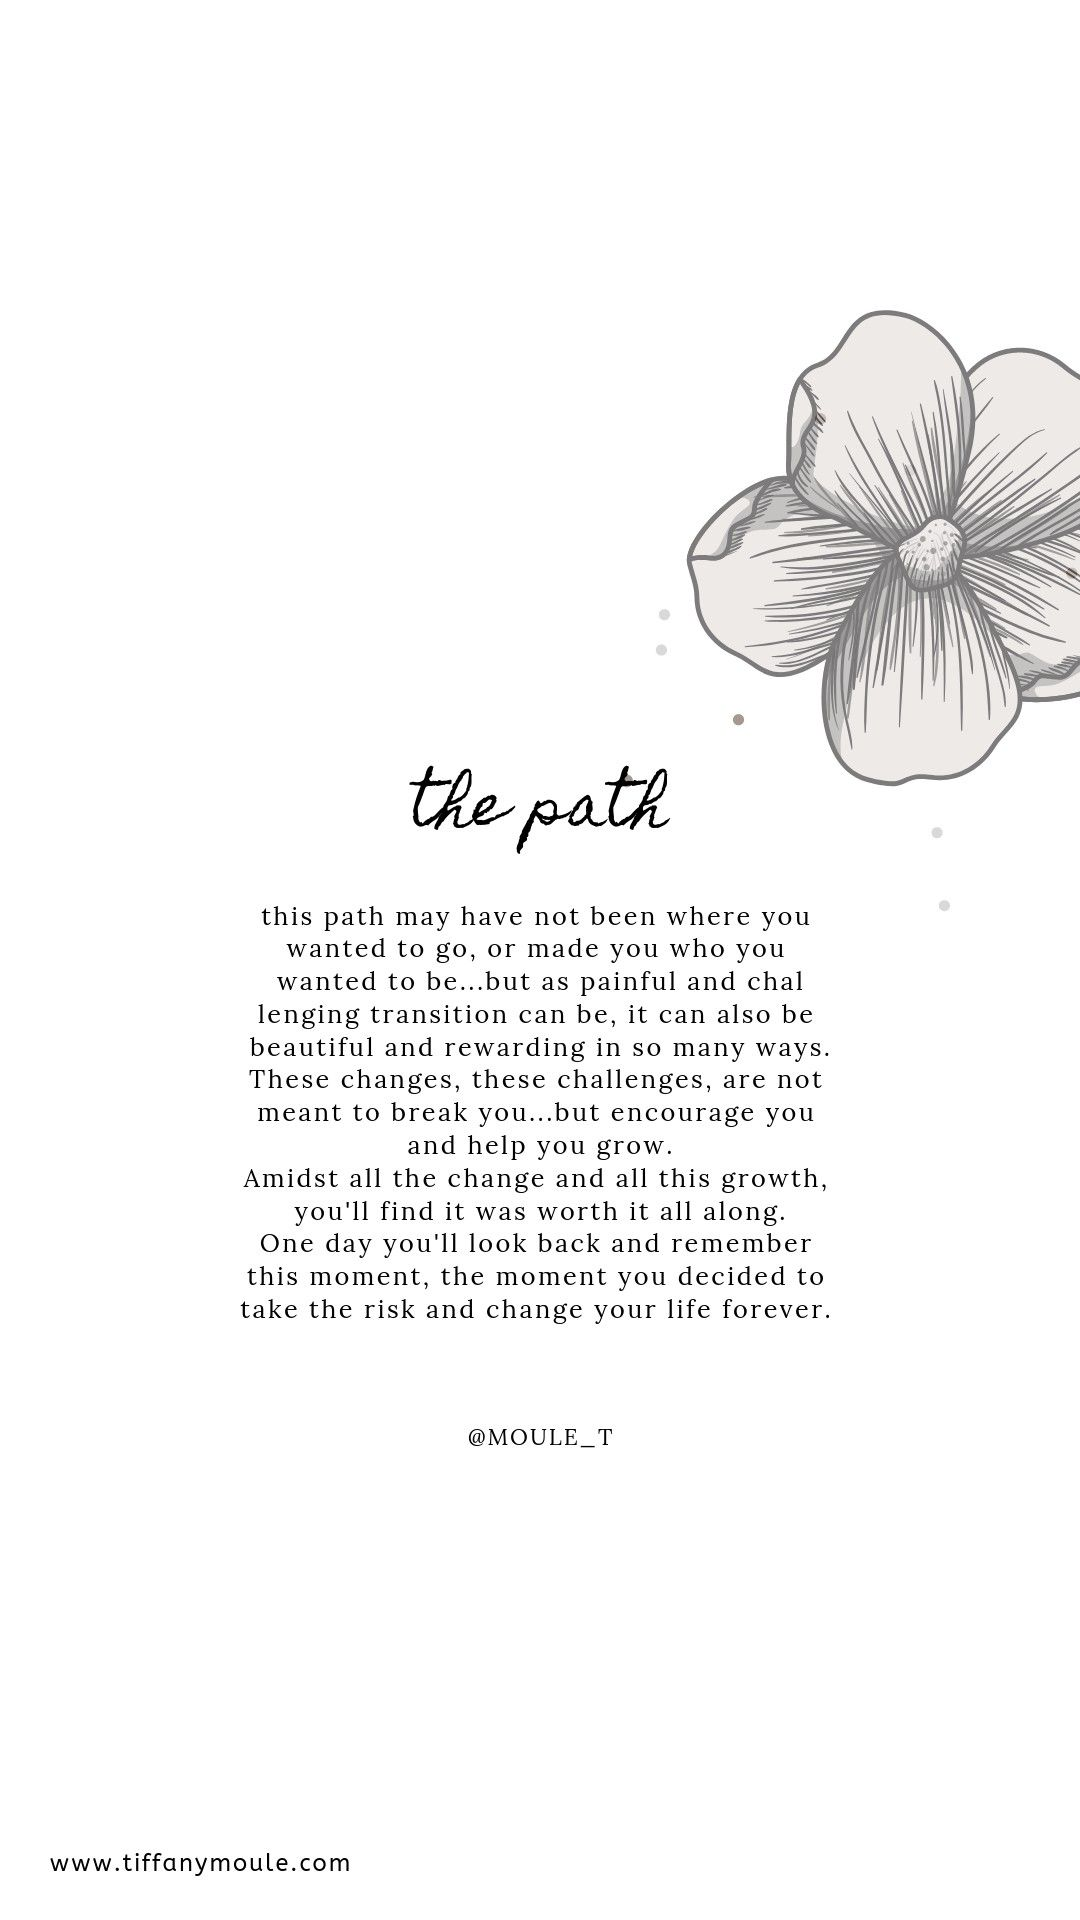 The path may seem narrow now, but it is taking you to places that youll grow and blossom into a stro